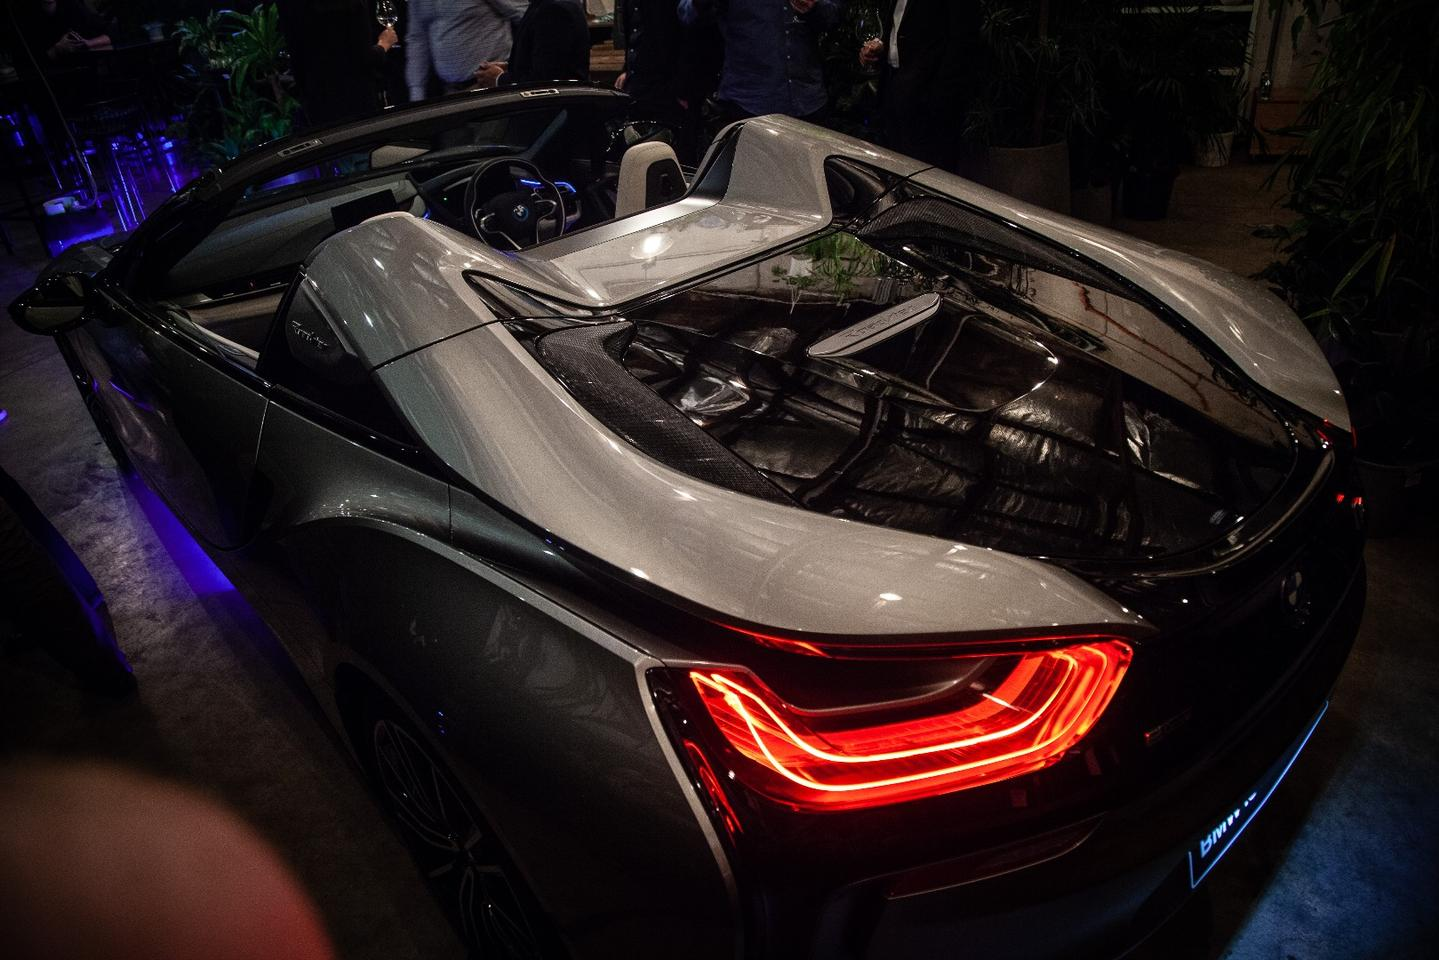 BMW i8 Roadster: sexy hybrid supersports car with the roof off